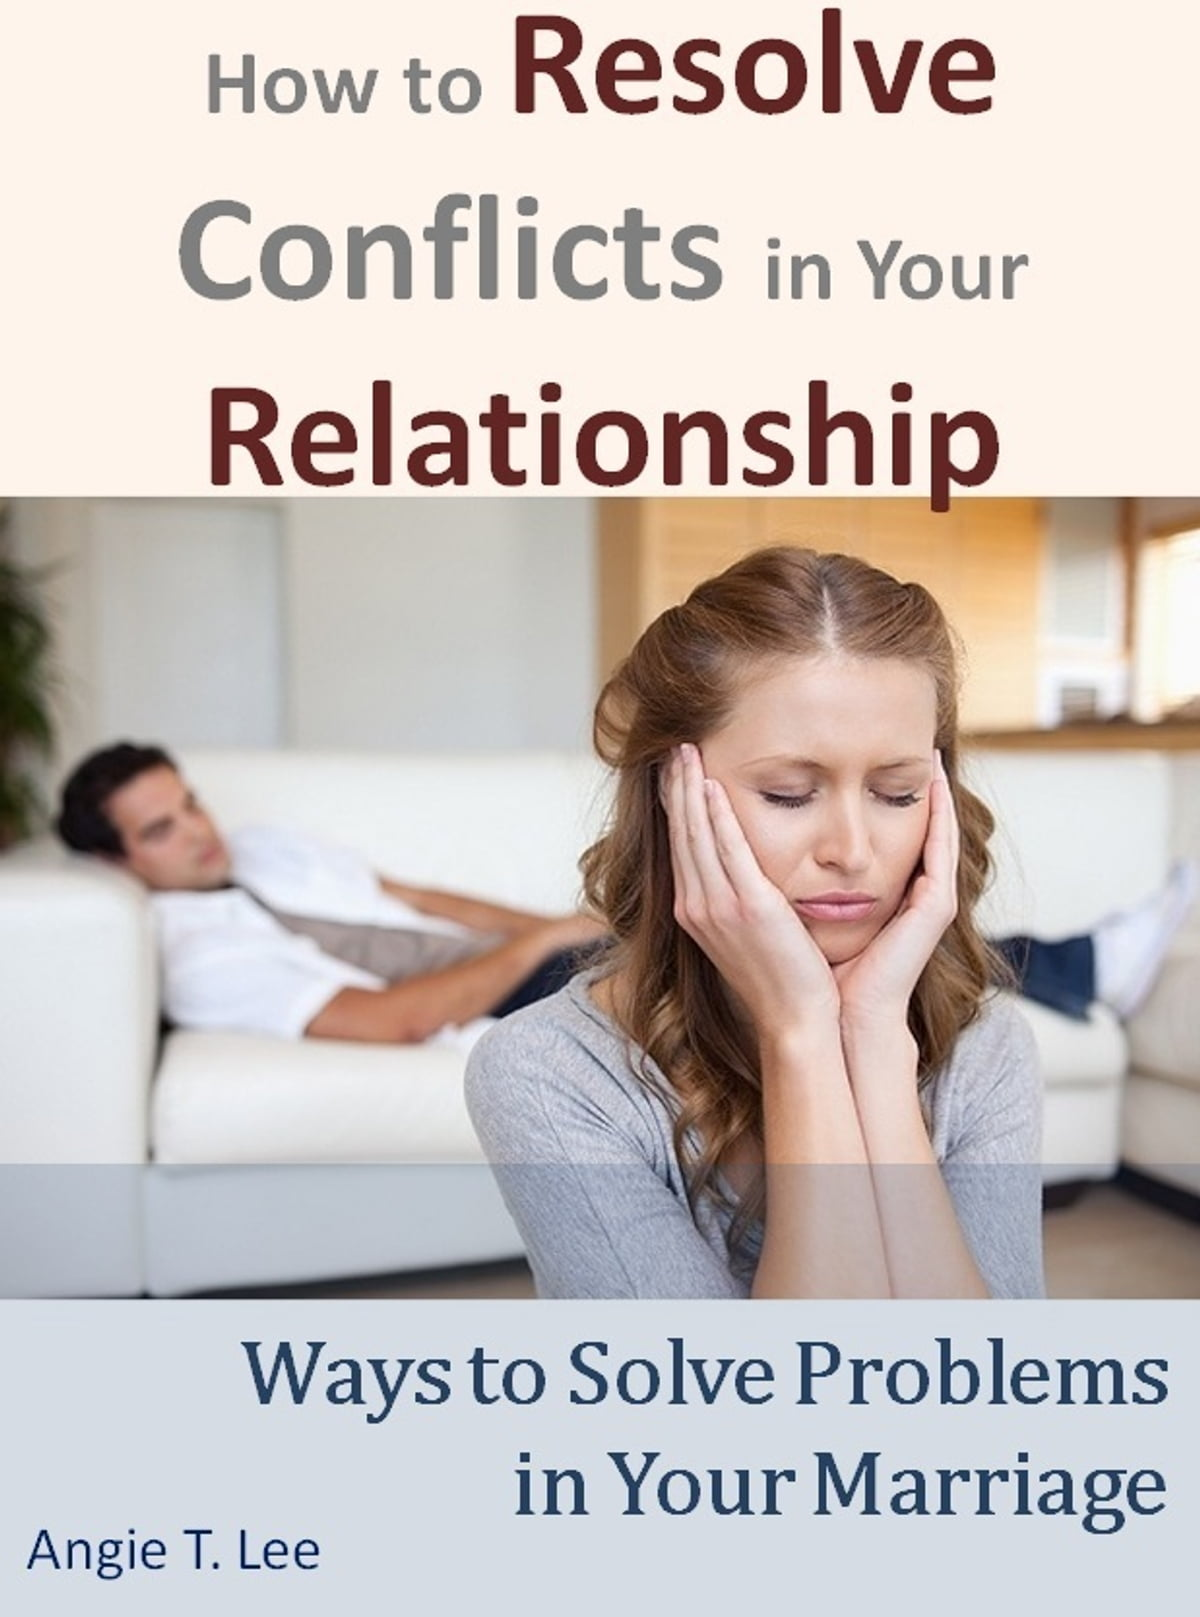 How to Resolve Conflicts in Your Relationship-Ways to Solve Problems in  Your Marriage ebook by Angie T  Lee - Rakuten Kobo